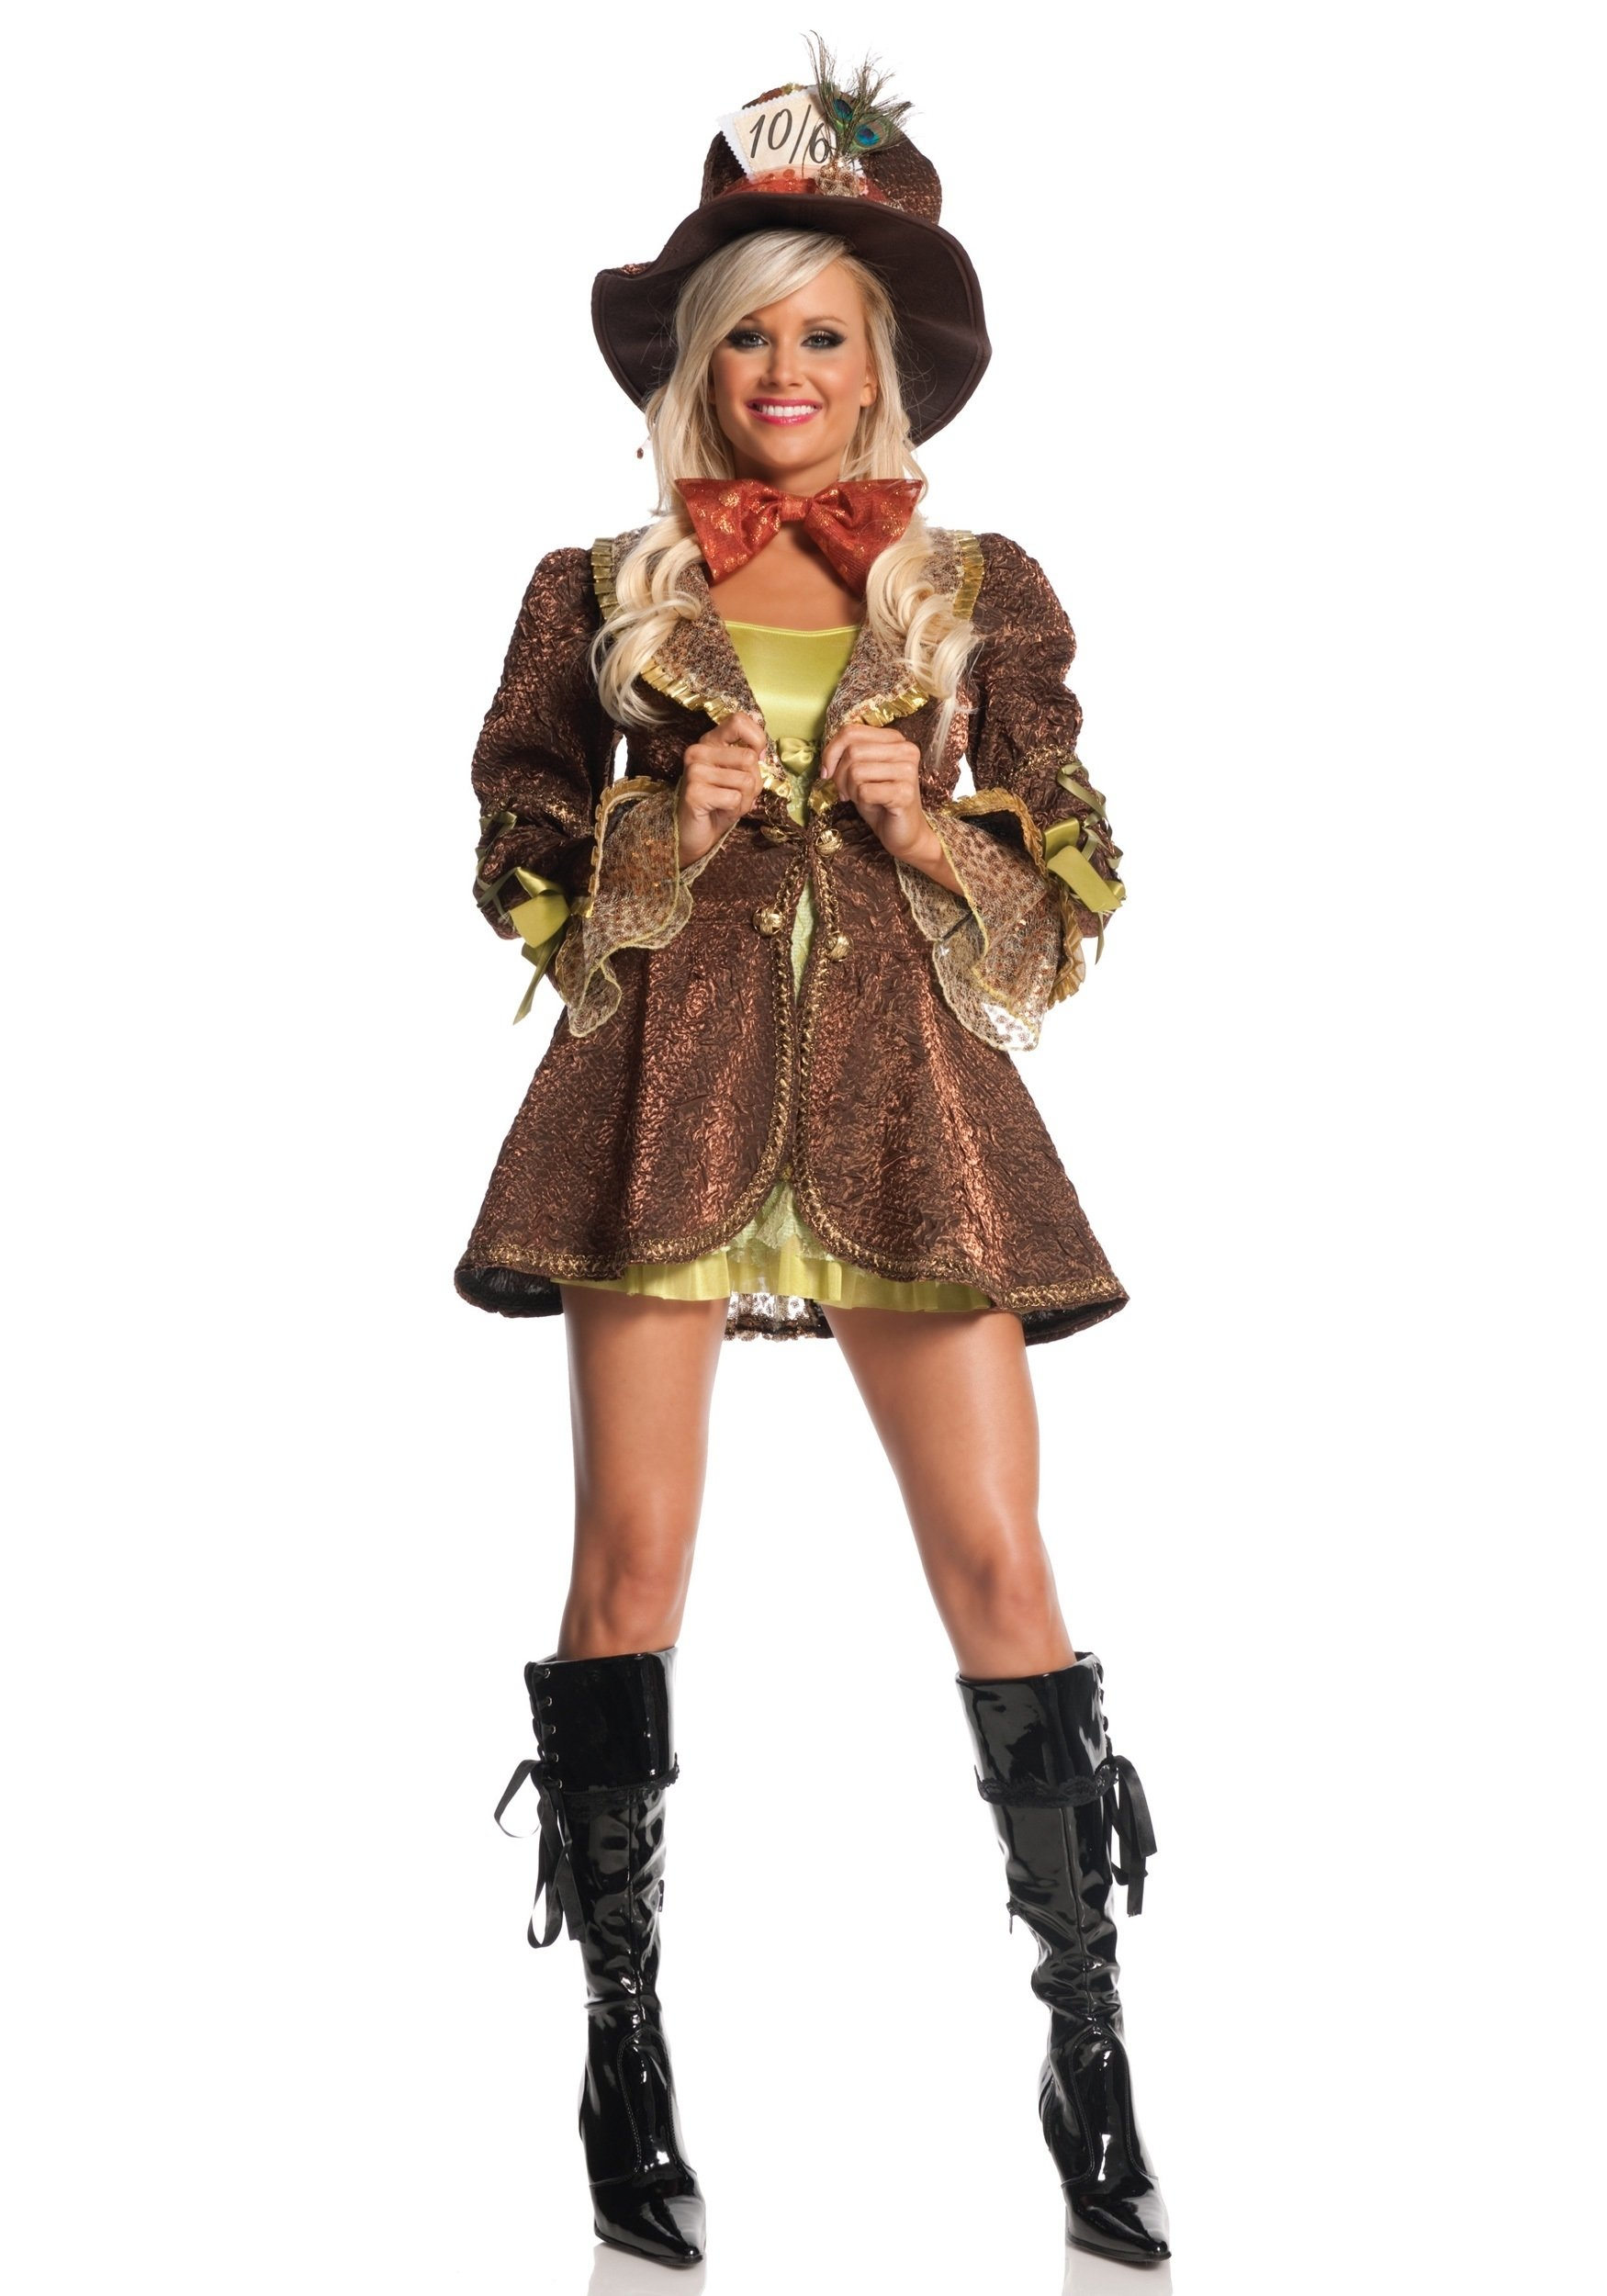 10 Perfect Female Mad Hatter Costume Ideas sexy marvelous mad hatter costume sexy mad hatter halloween costumes 2020